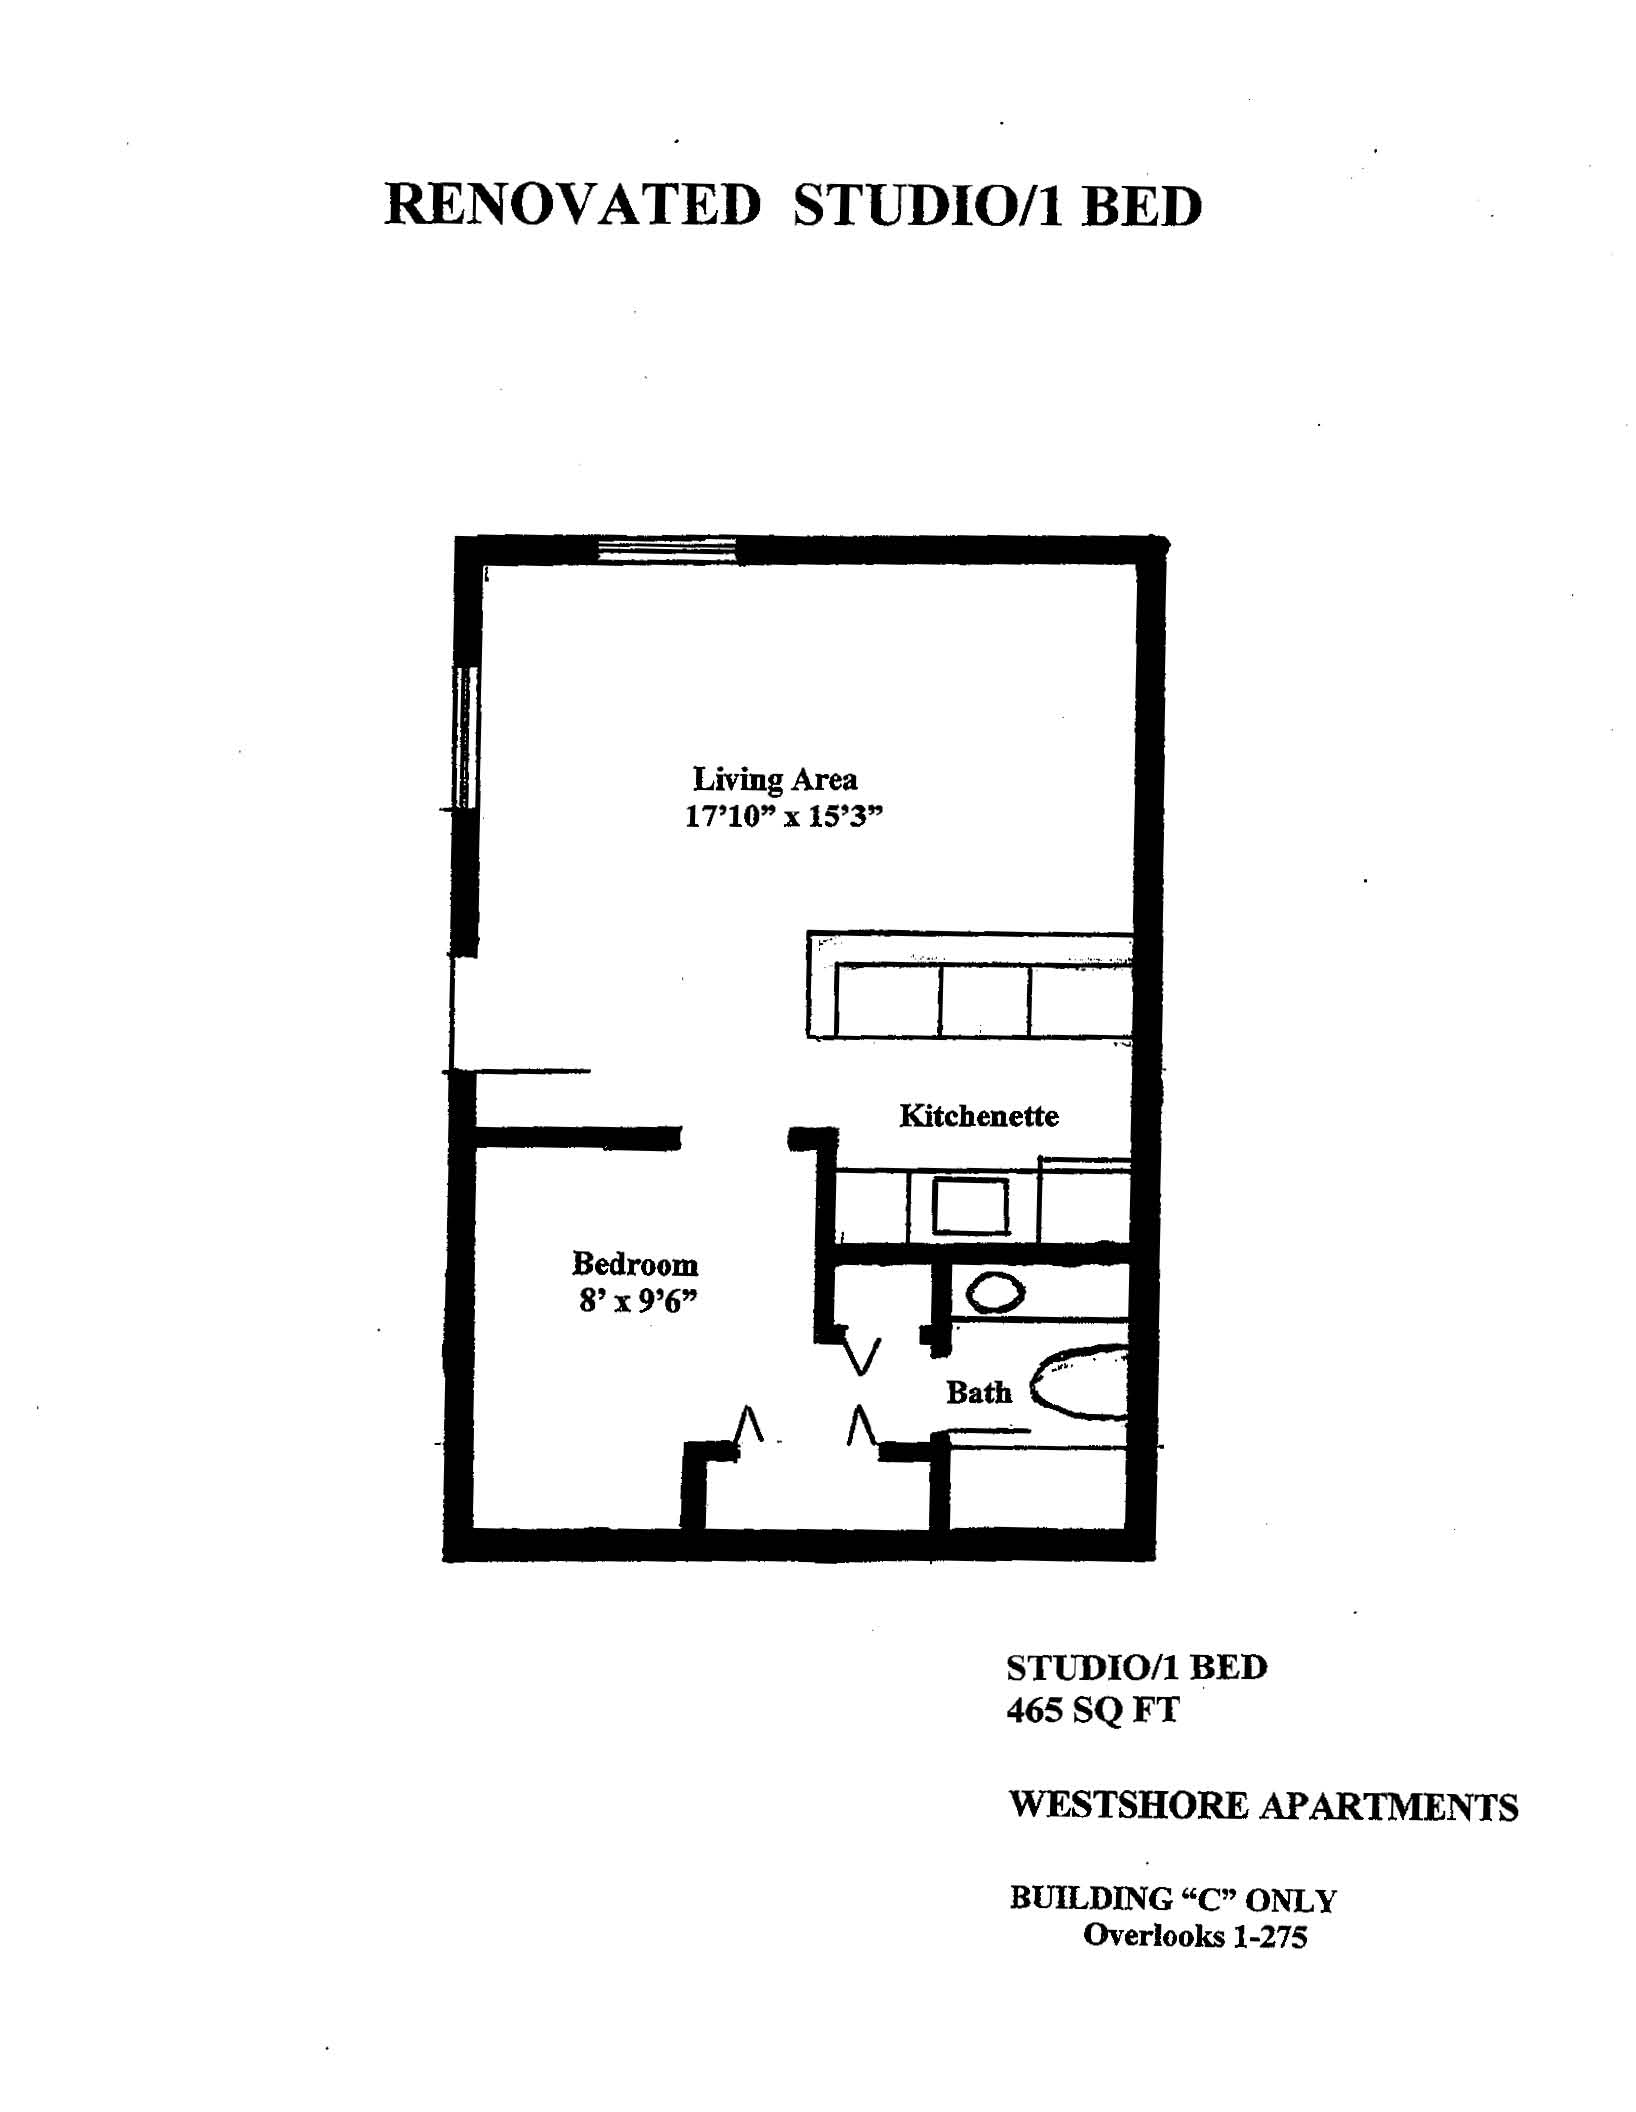 1 bedroom studio floor plans for One bedroom efficiency apartment plans